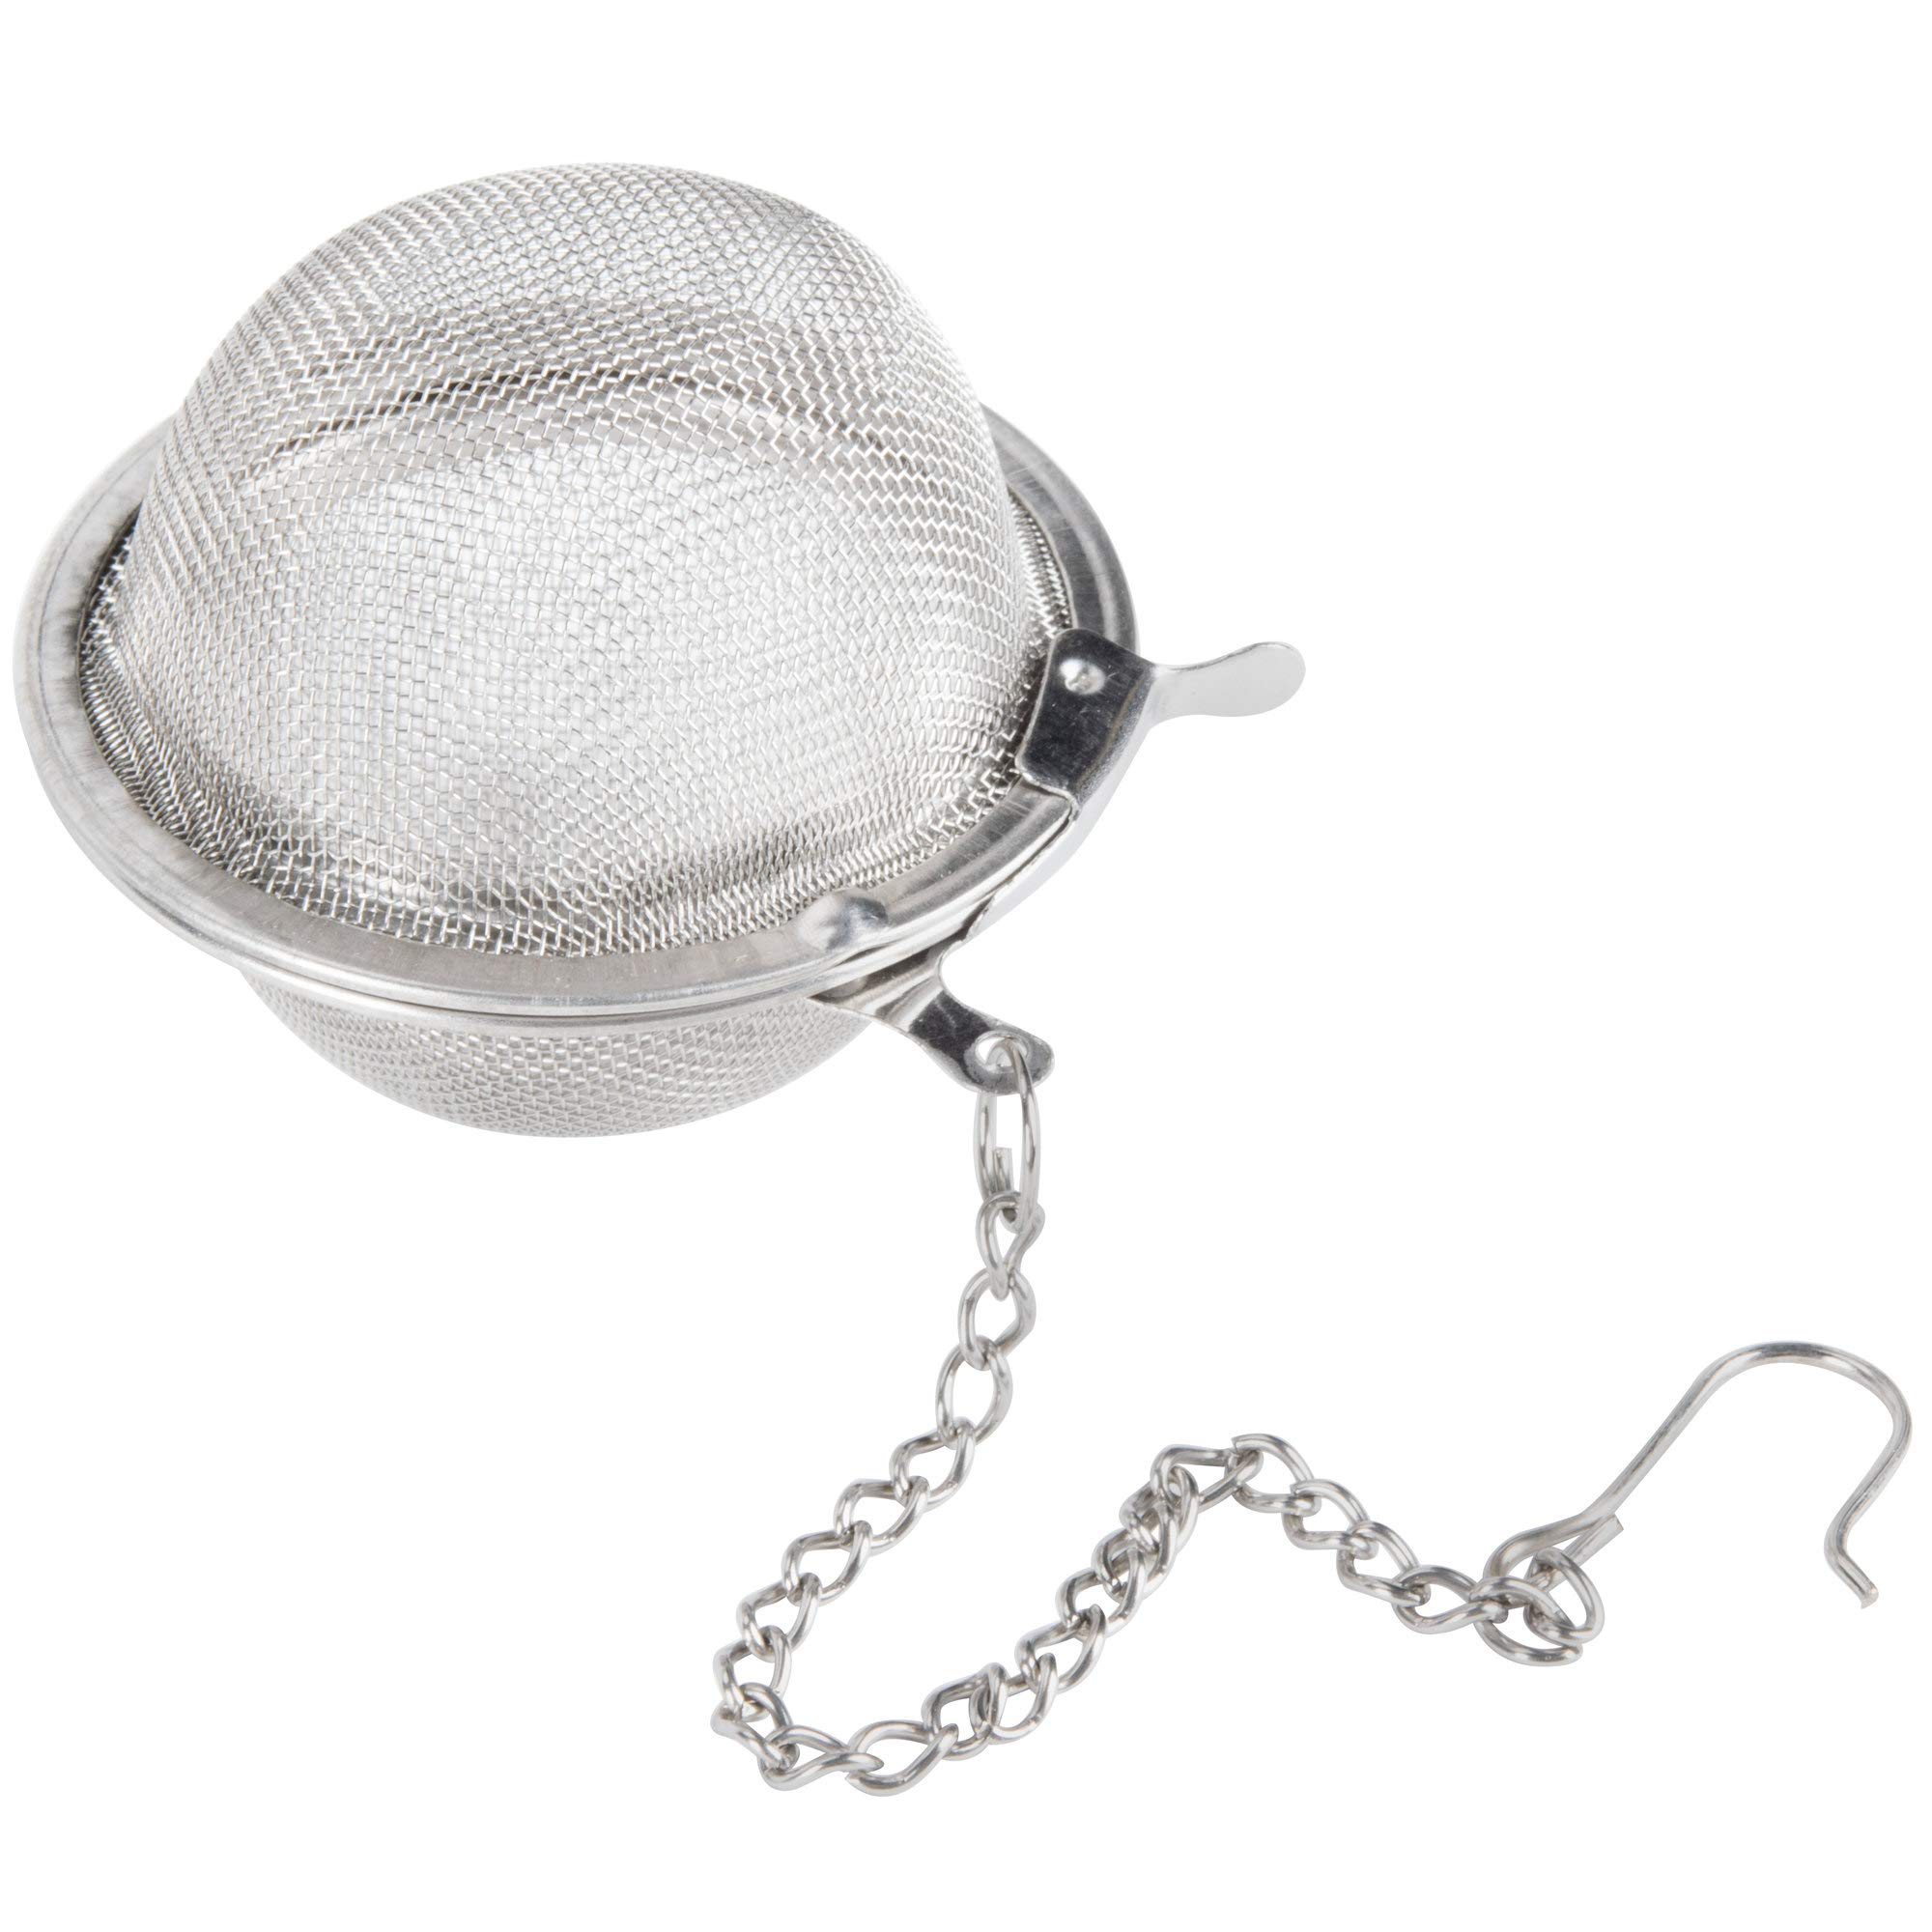 TableTop King 2'' Stainless Steel Tea Ball Infuser by TableTop King